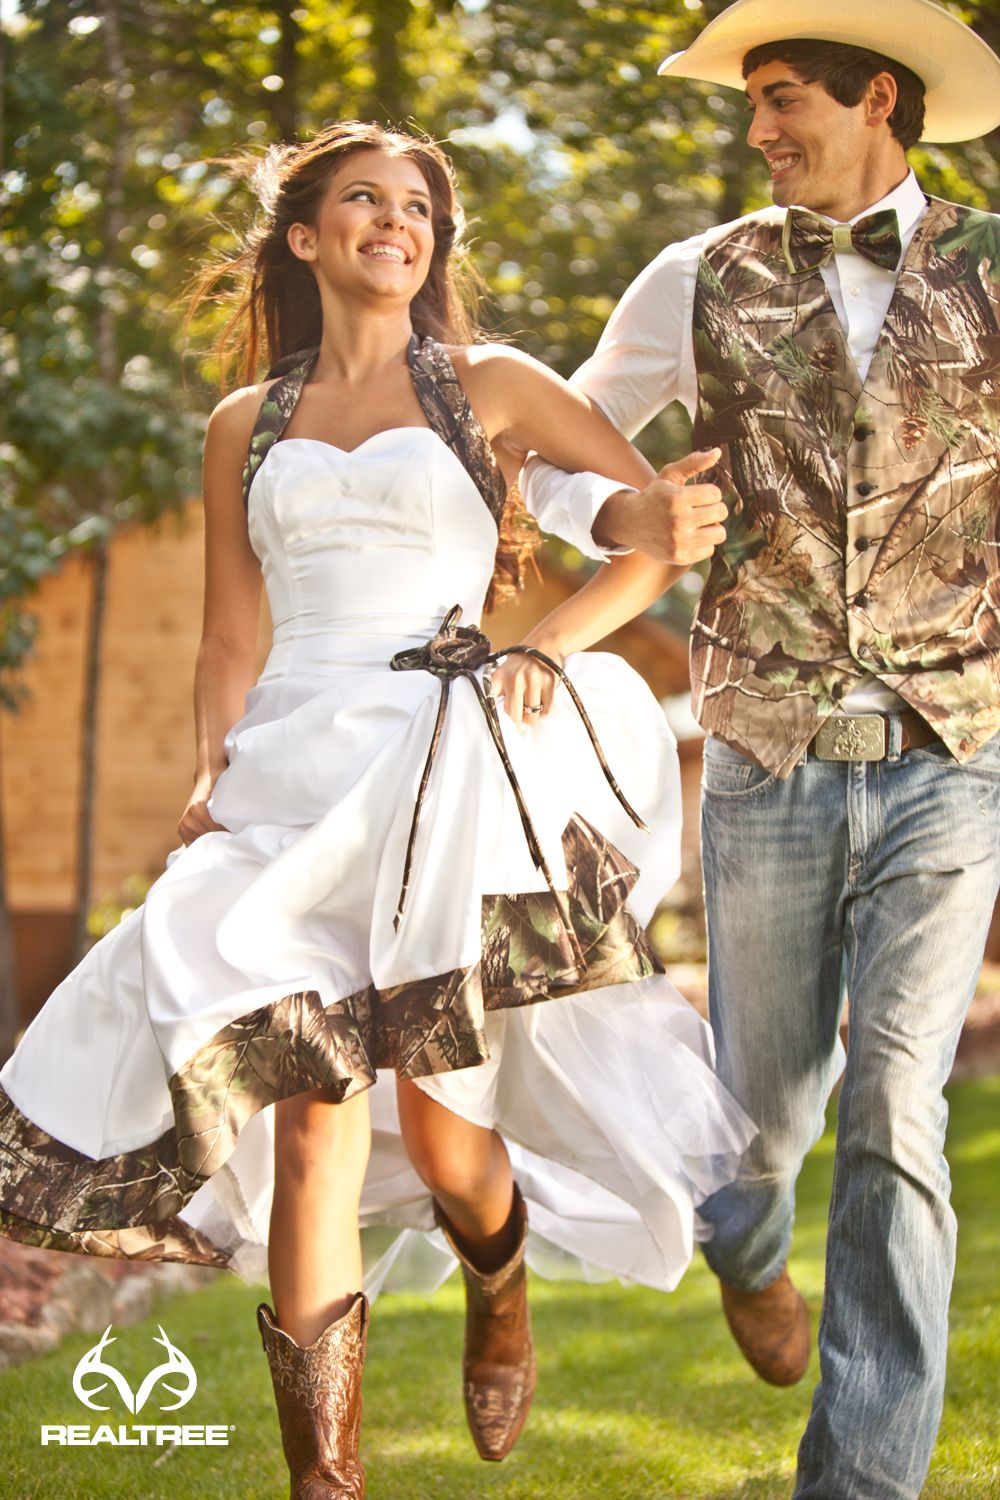 Realtree wedding dresses  Realtree Camo Wedding  Romance in the Country  ucuc